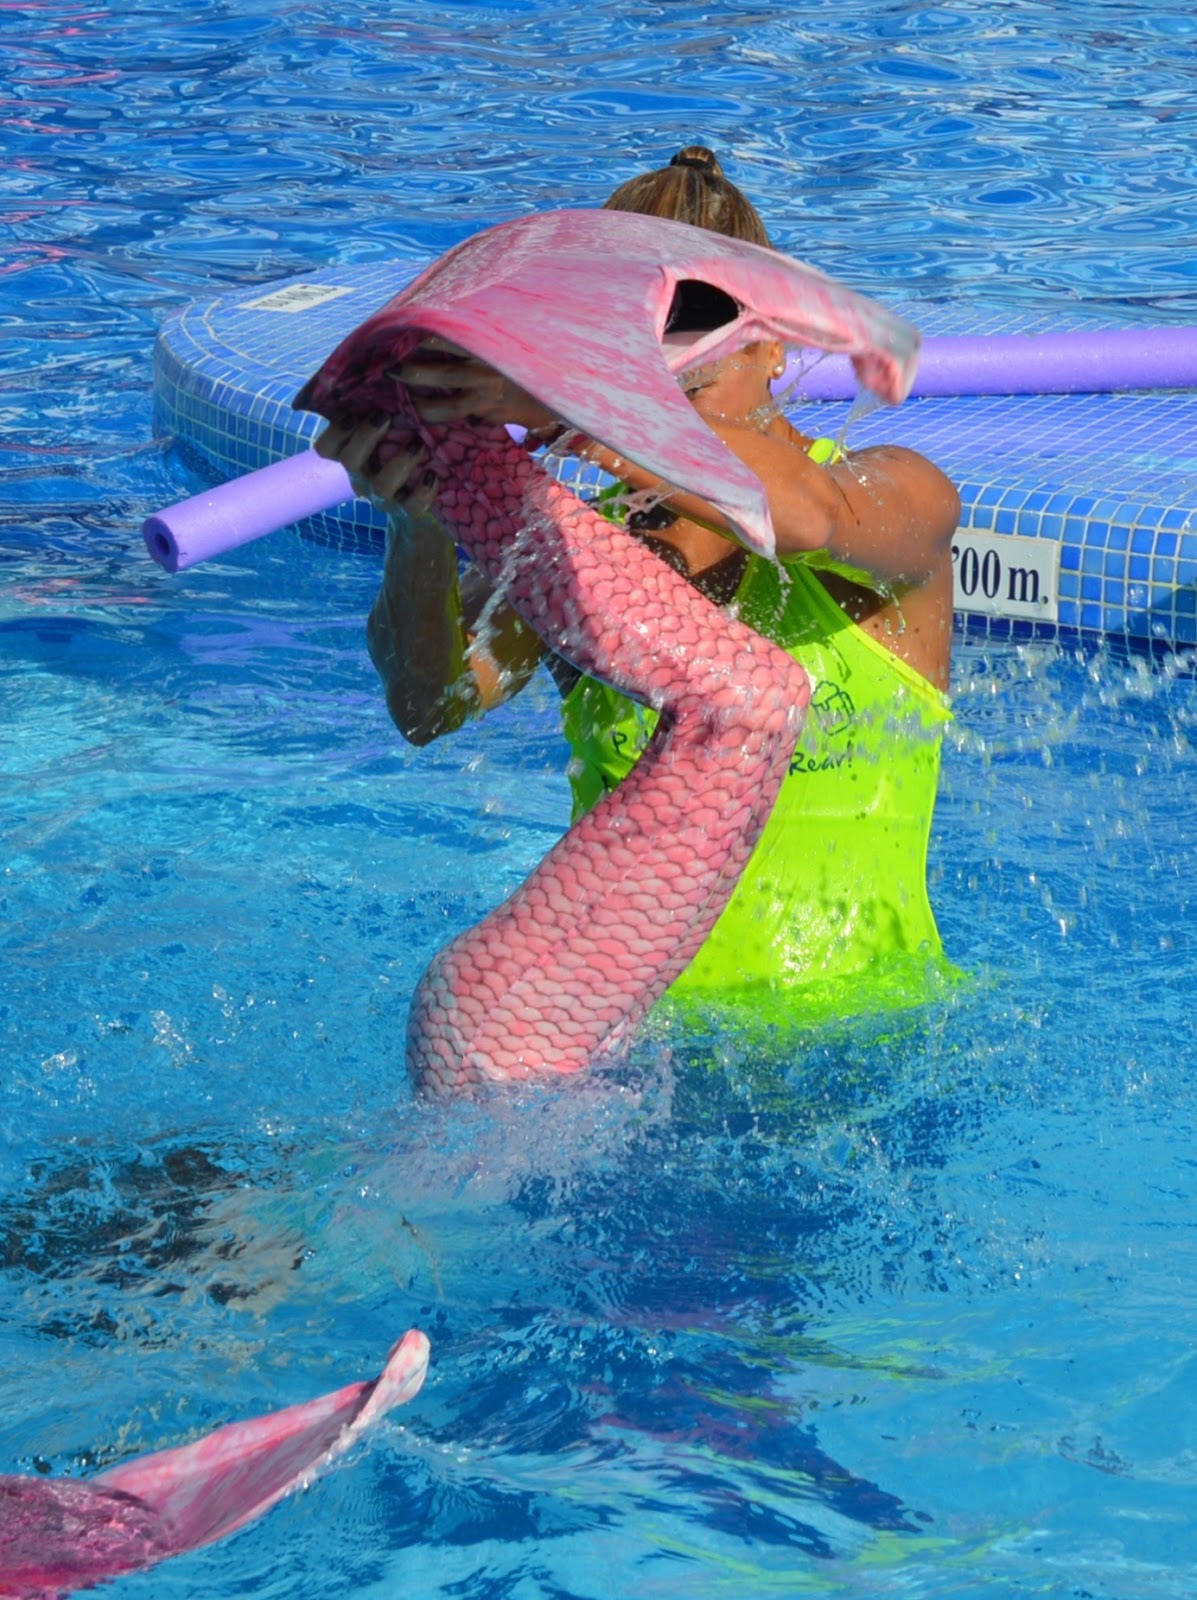 Pirate Swimming Pools and Mermaid Lessons at Pirates Village, Majorca - mermaid tail wave